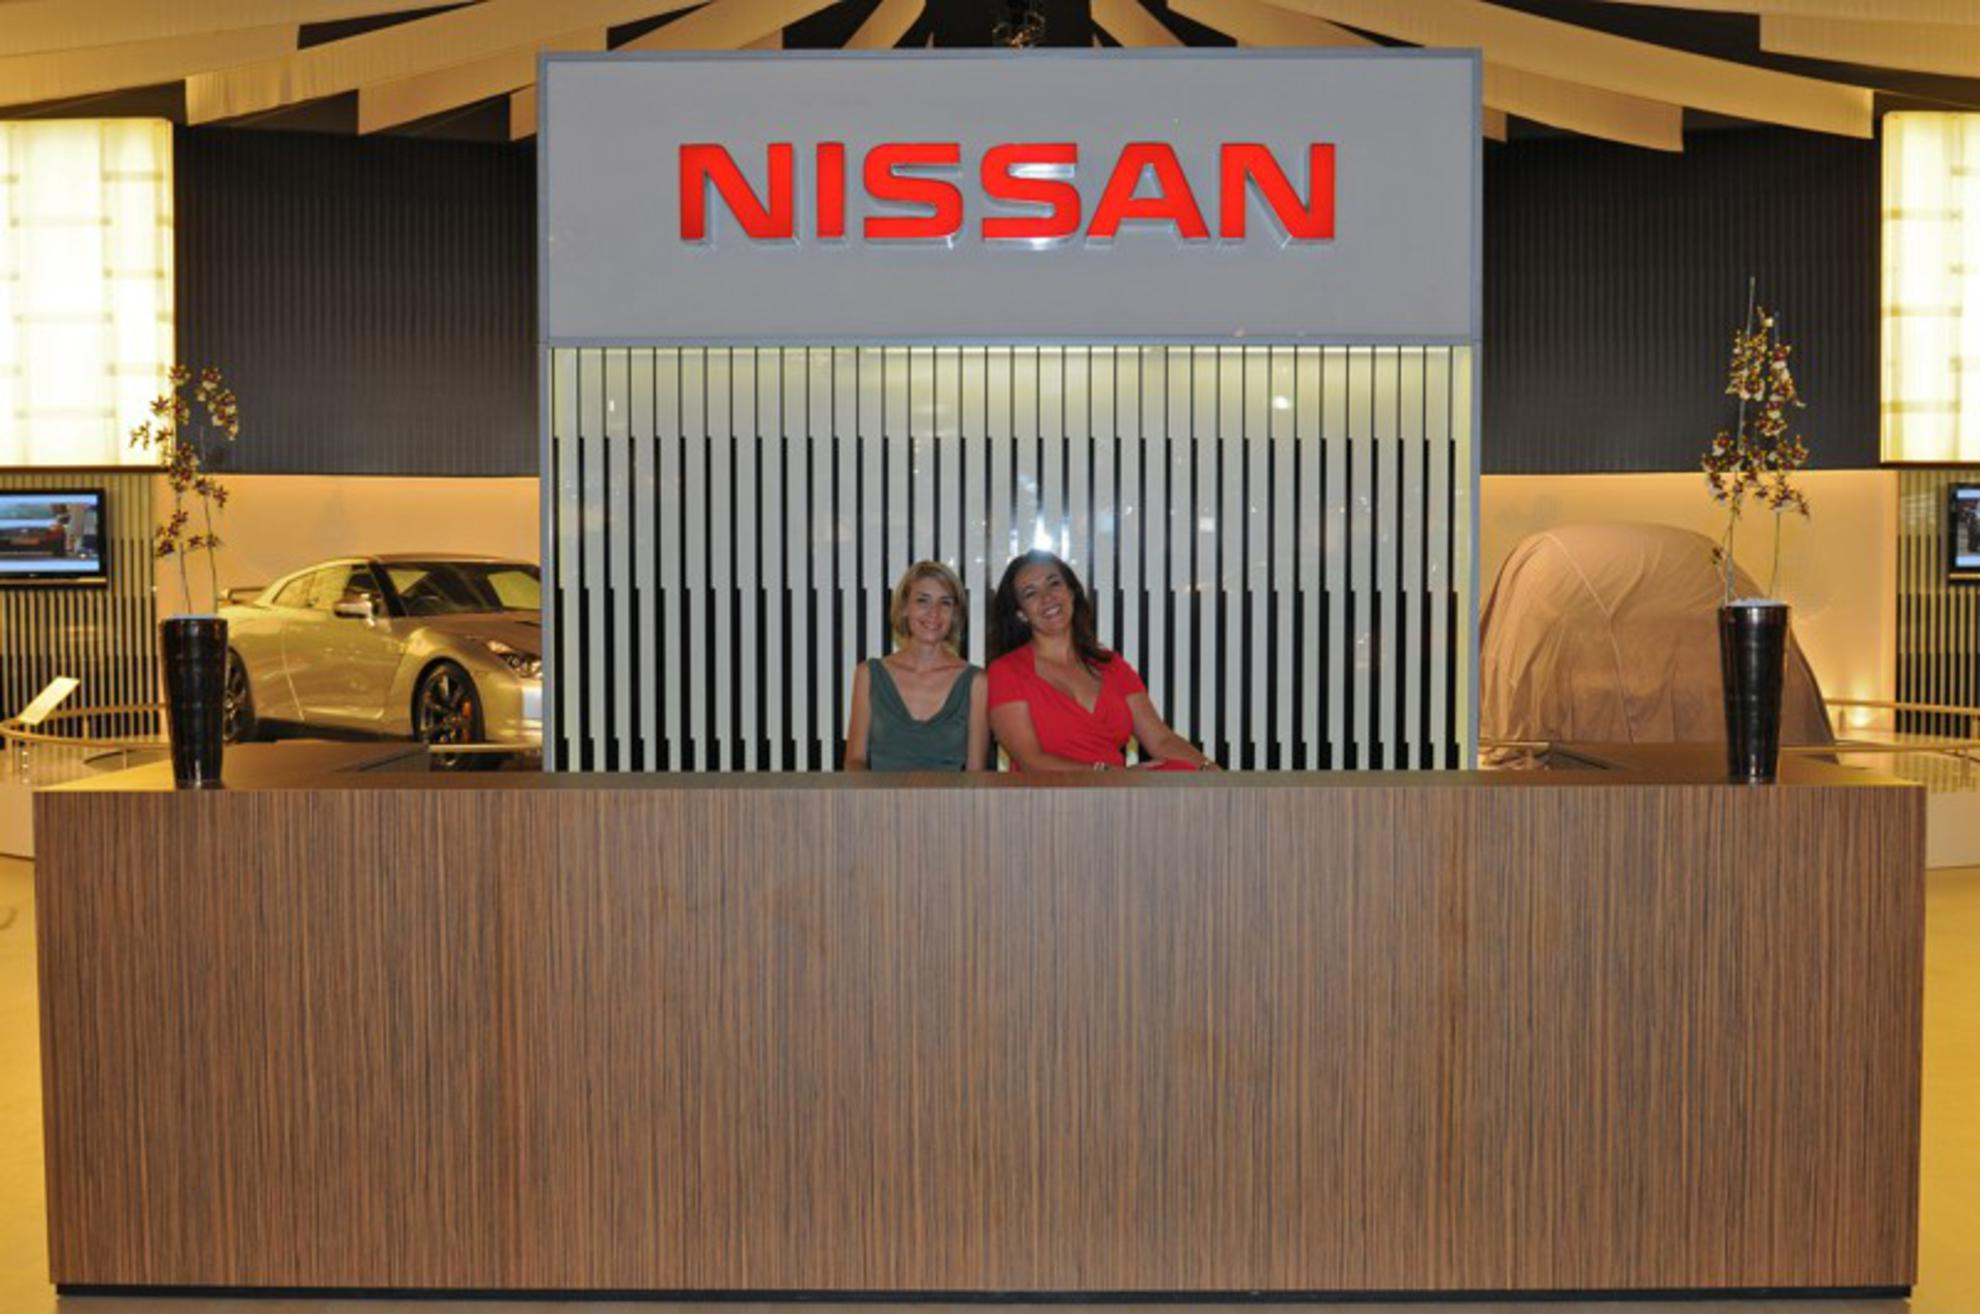 Nissan at the Johannesburg Motor Show